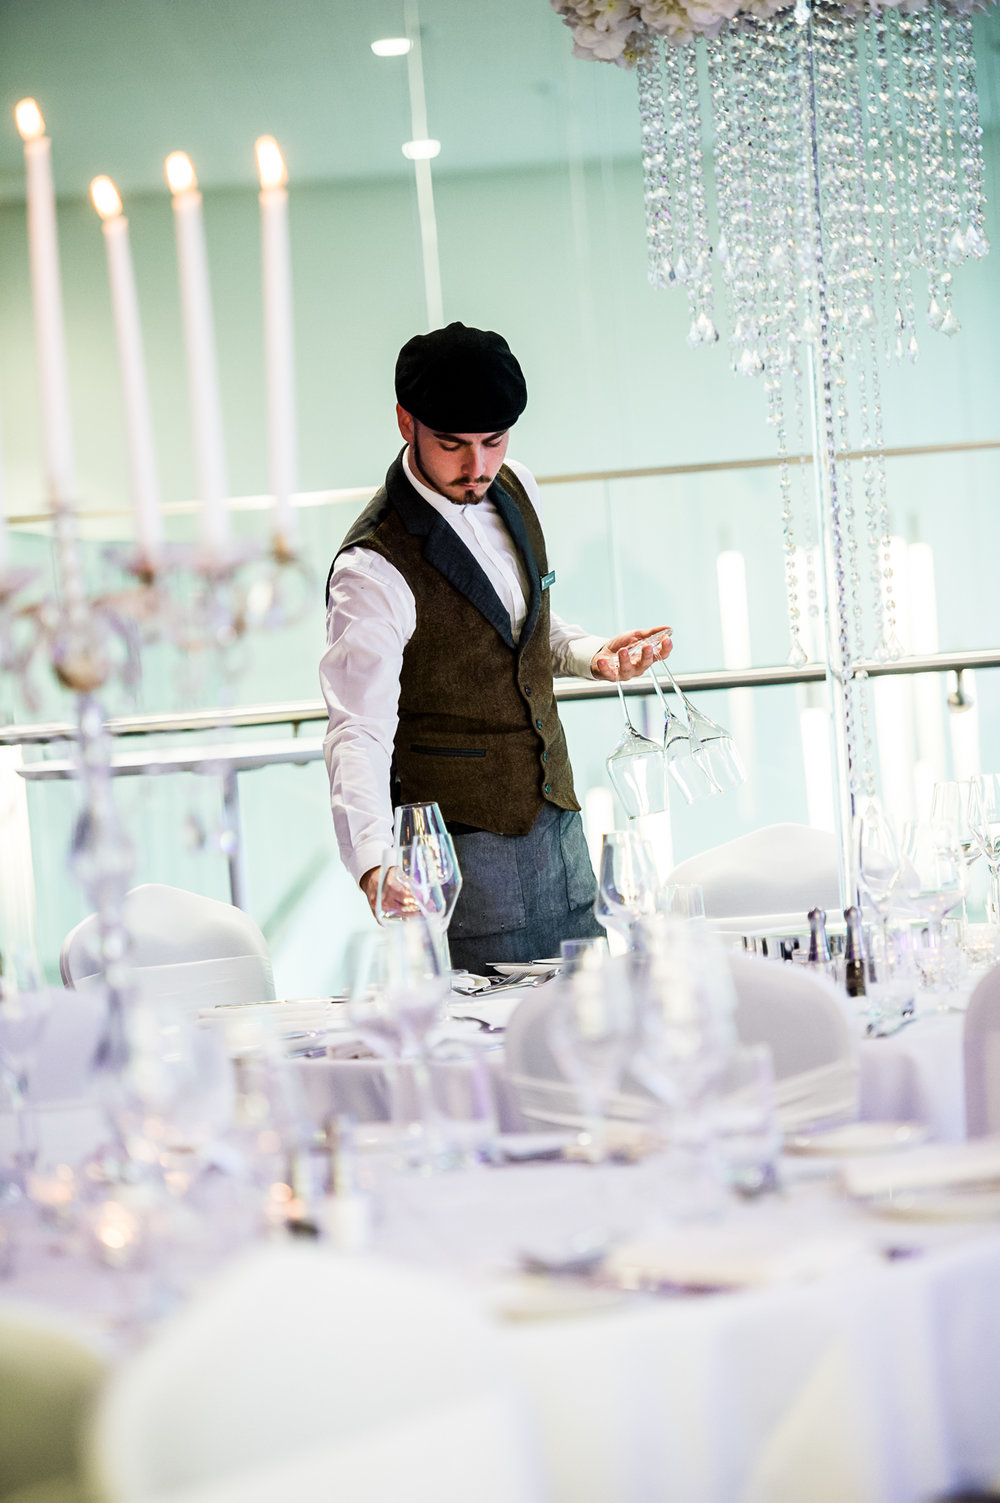 Accor Hotel Pullman Hotel Liverpool weddings photo